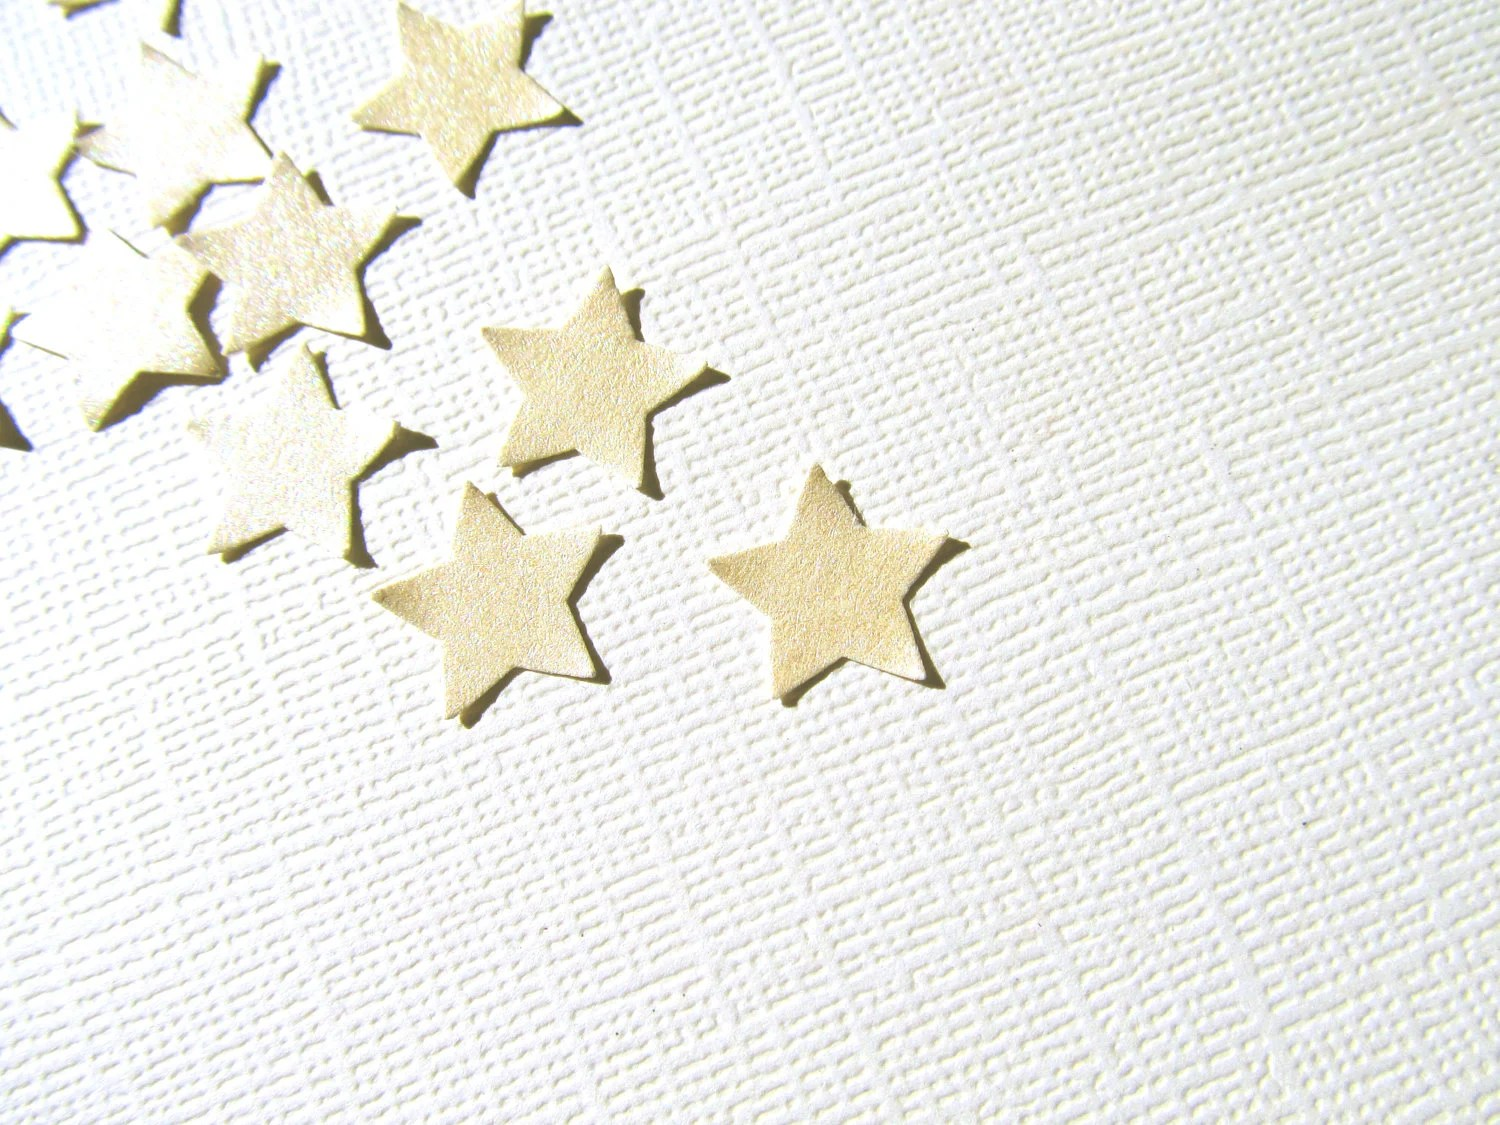 Gold Star Punches, Shimmer, Pearlized, Party Decor, Confetti, Weddings, Embellishments - CatchSomeRaes